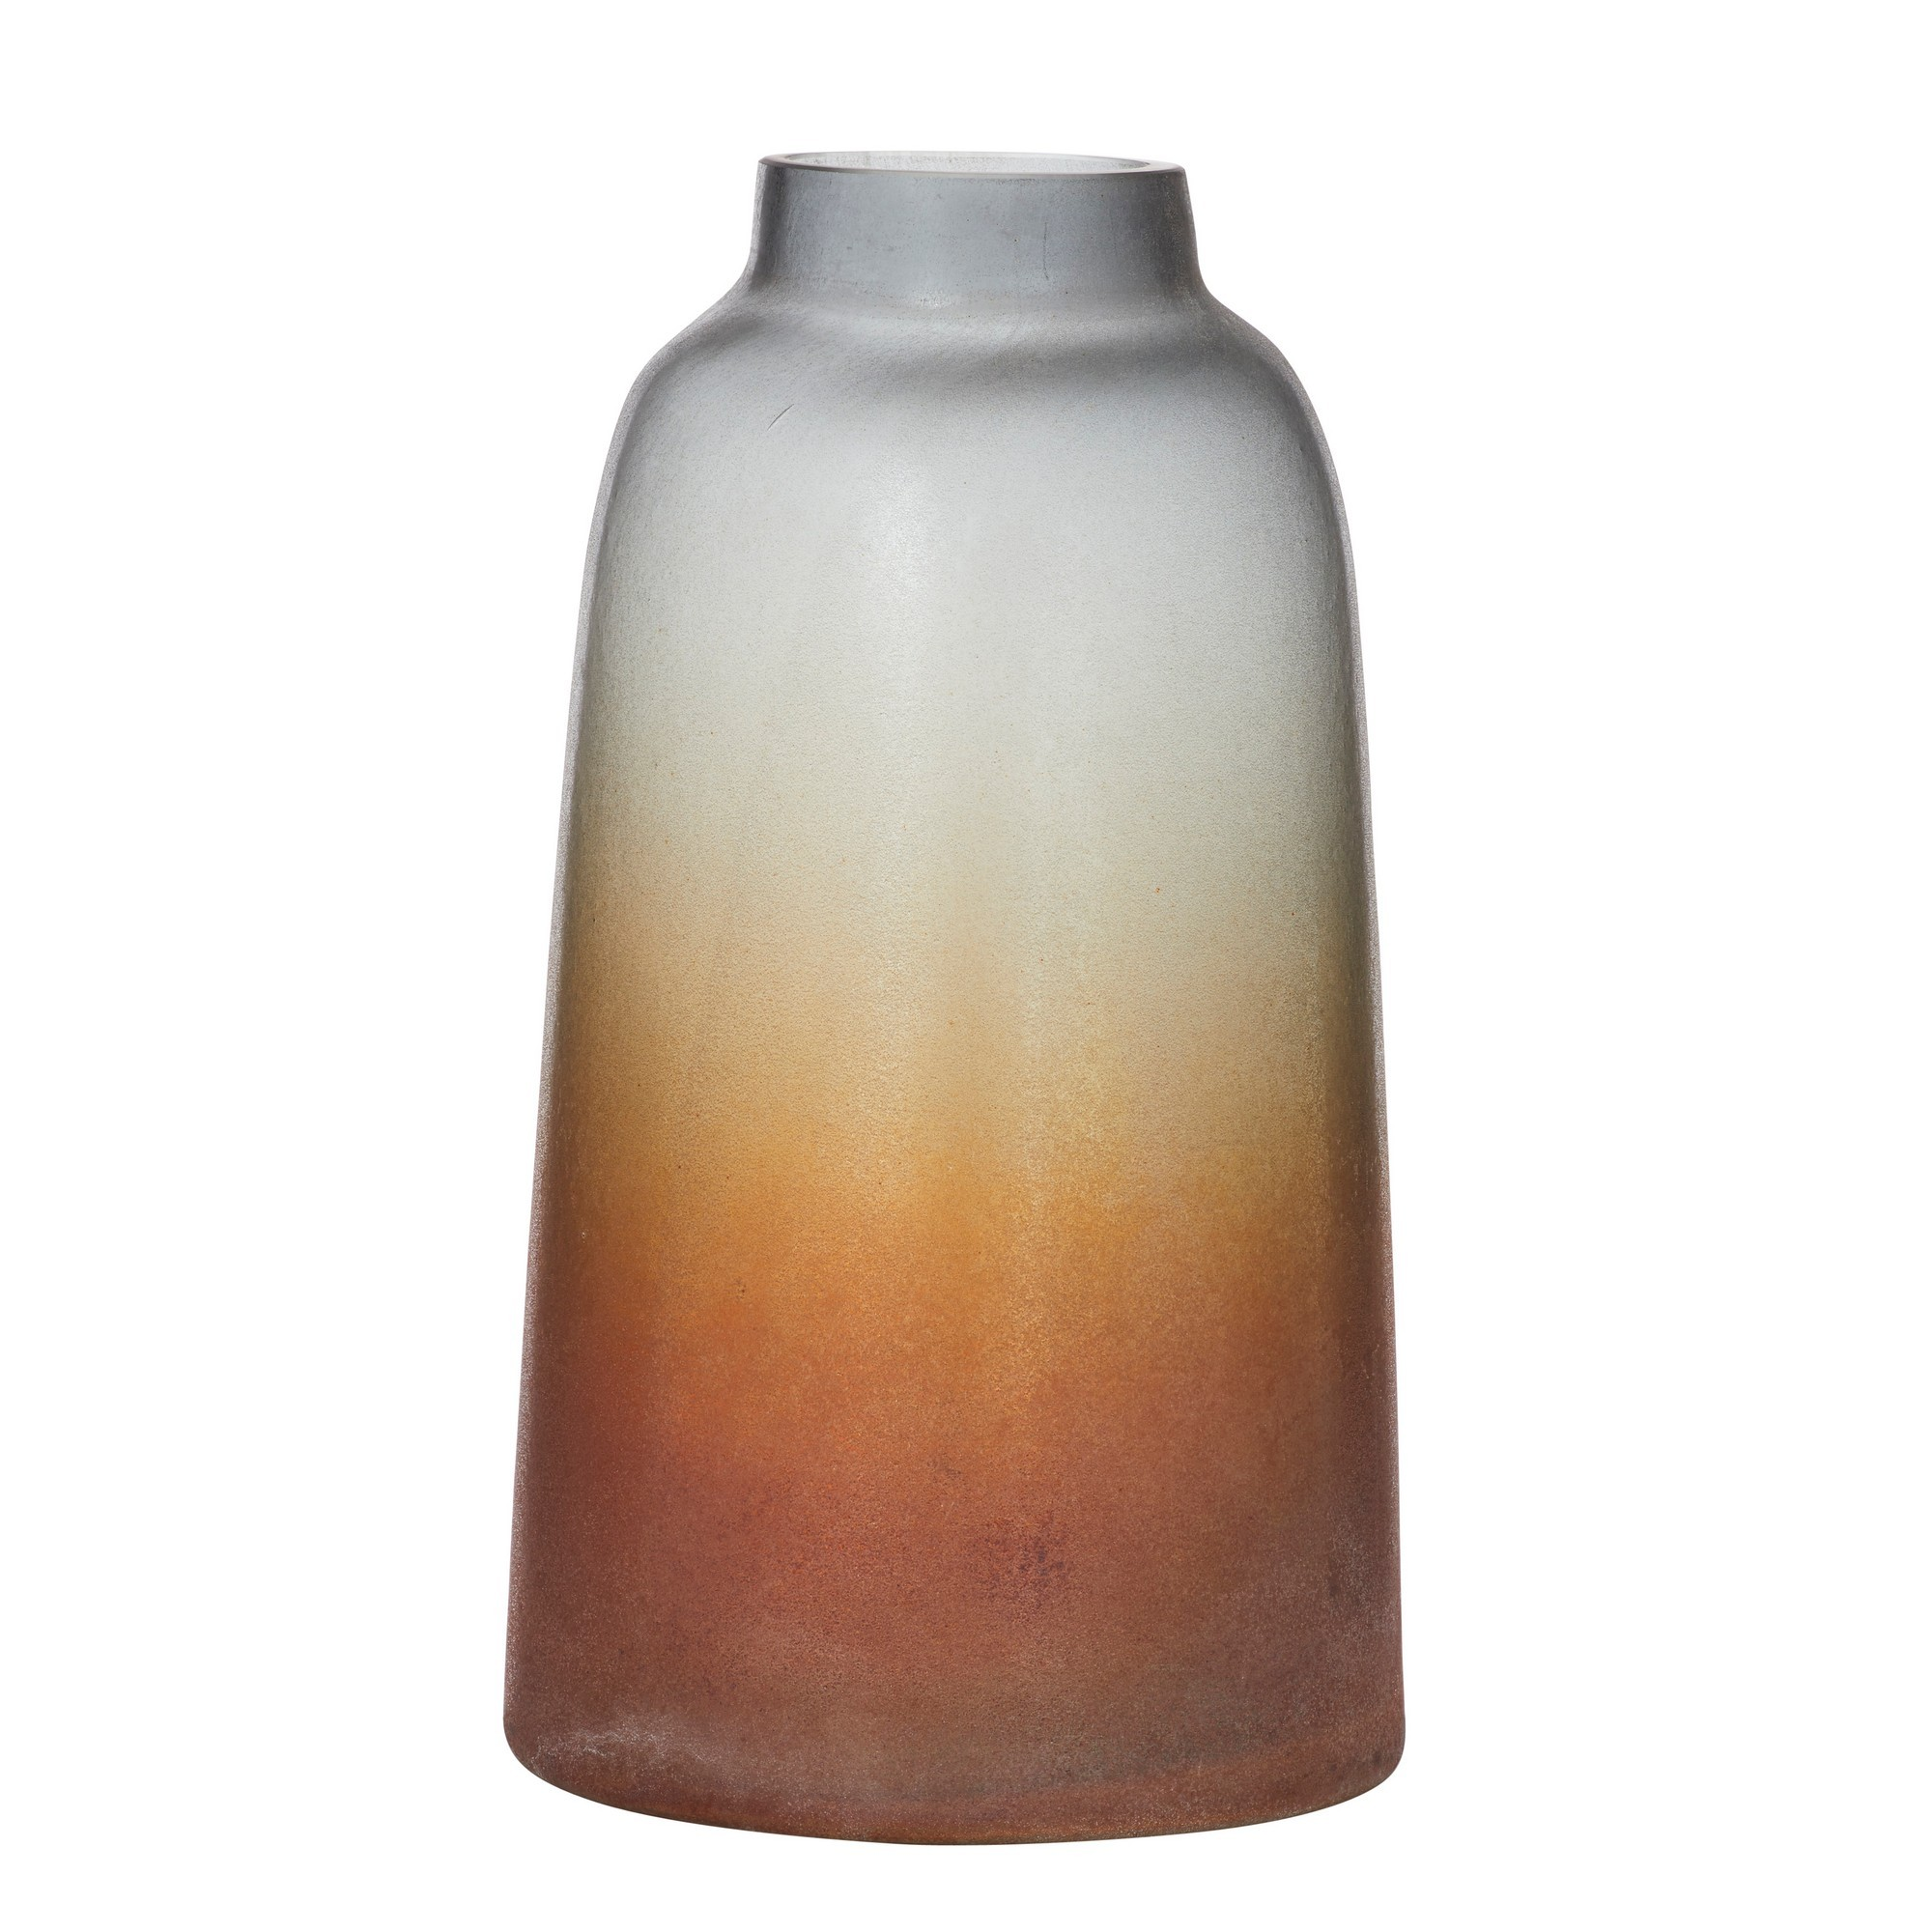 Celestia Glass Vase, Large